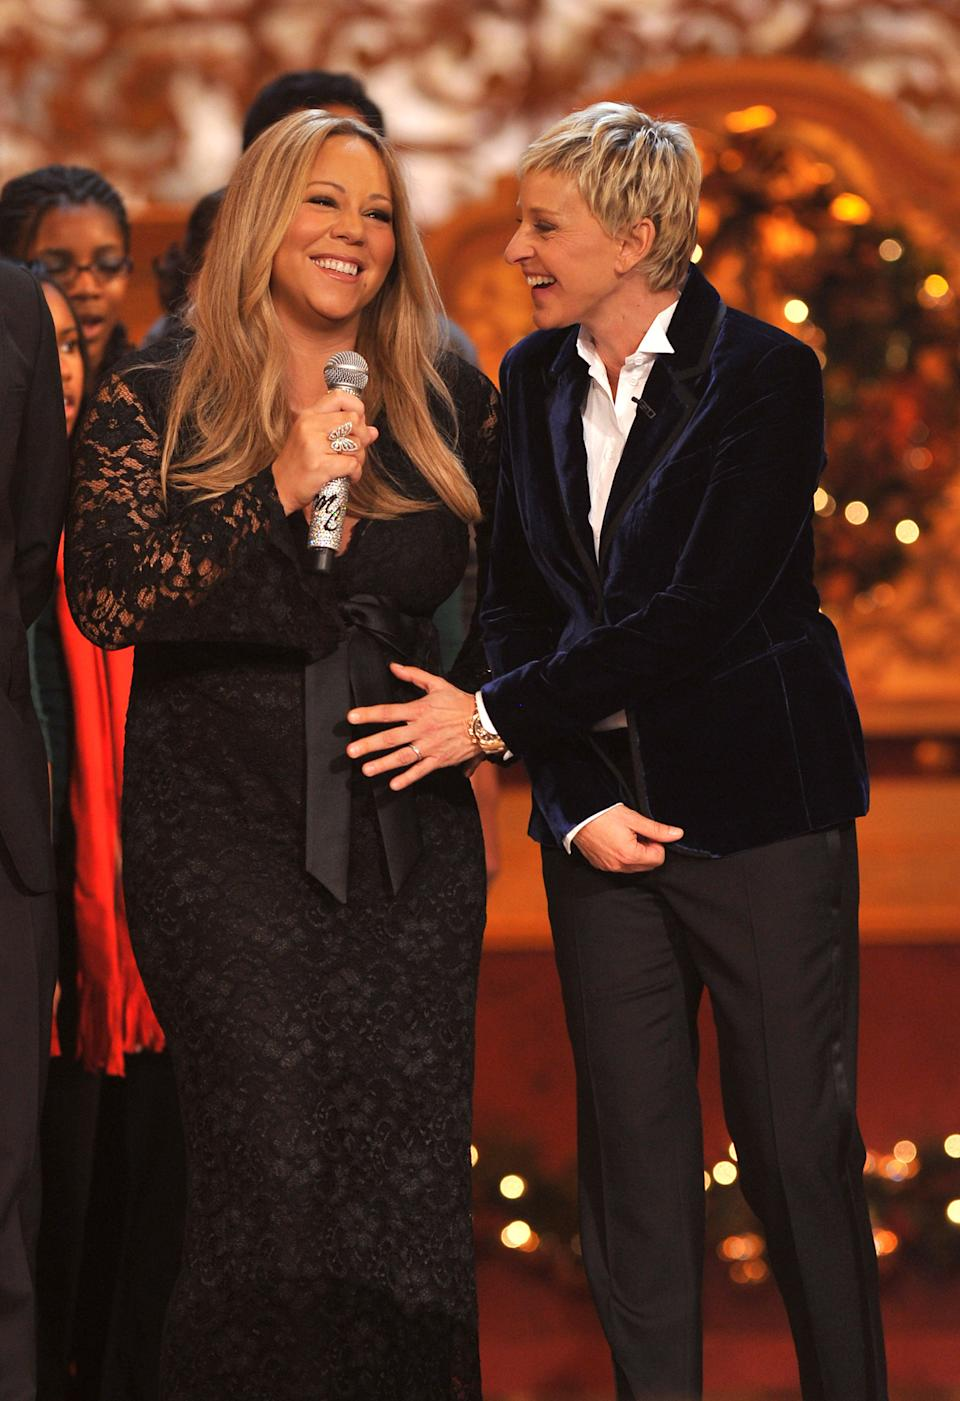 """(EXCLUSIVE, Premium Rates Apply) (EXCLUSIVE COVERAGE) Mariah Carey and Ellen DeGeneres perform onstage during TNT's """"Christmas in Washington 2010"""" at the National Building Museum on December 12, 2010 in Washington, DC. """"Christmas in Washington 2010"""" airs on TNT December 17 at 8pm. 20792_003_0257.JPG"""